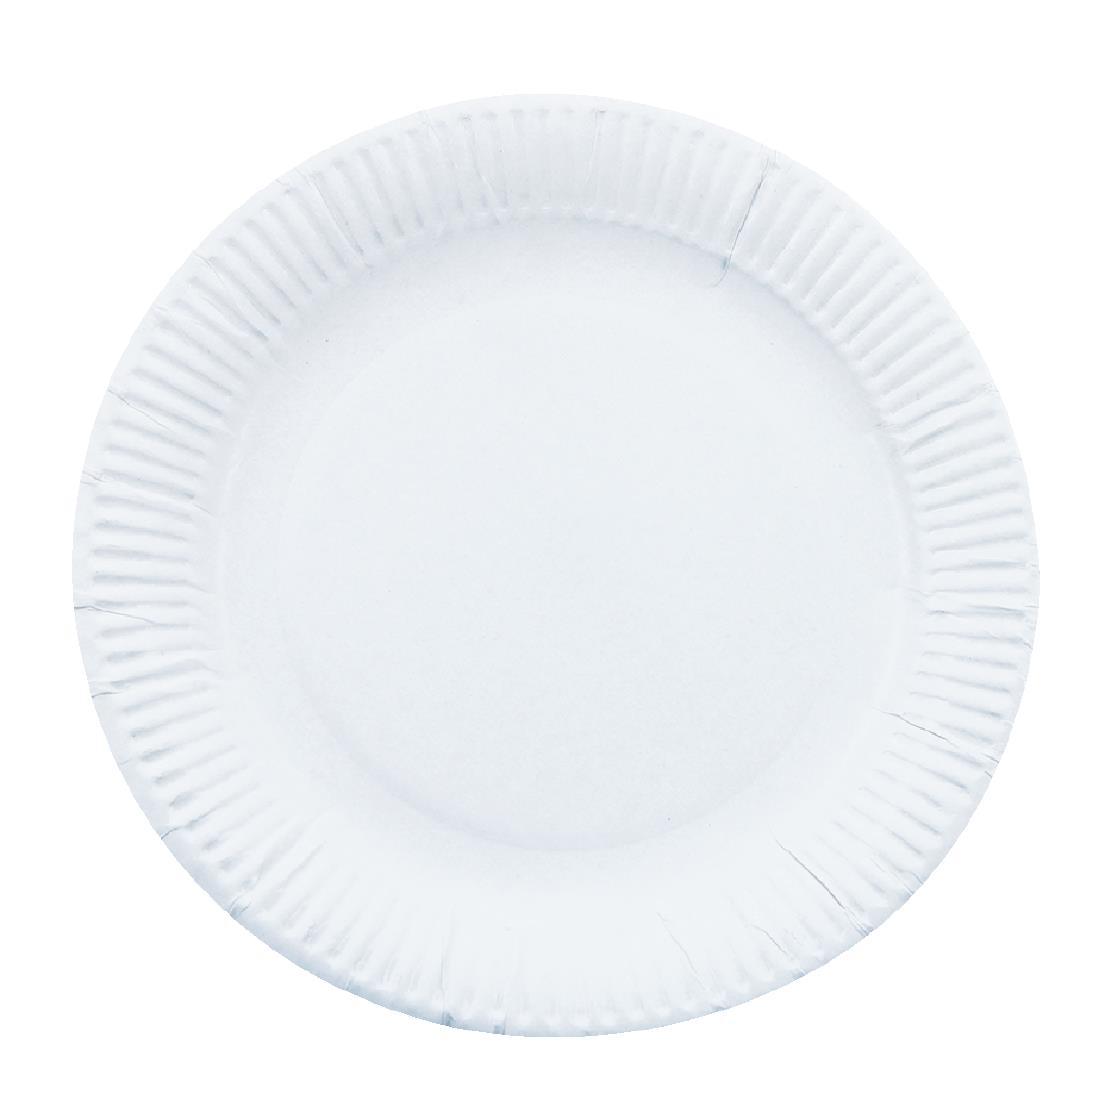 Image of Paper Plates 178mm (Pack of 250) Pack of 250